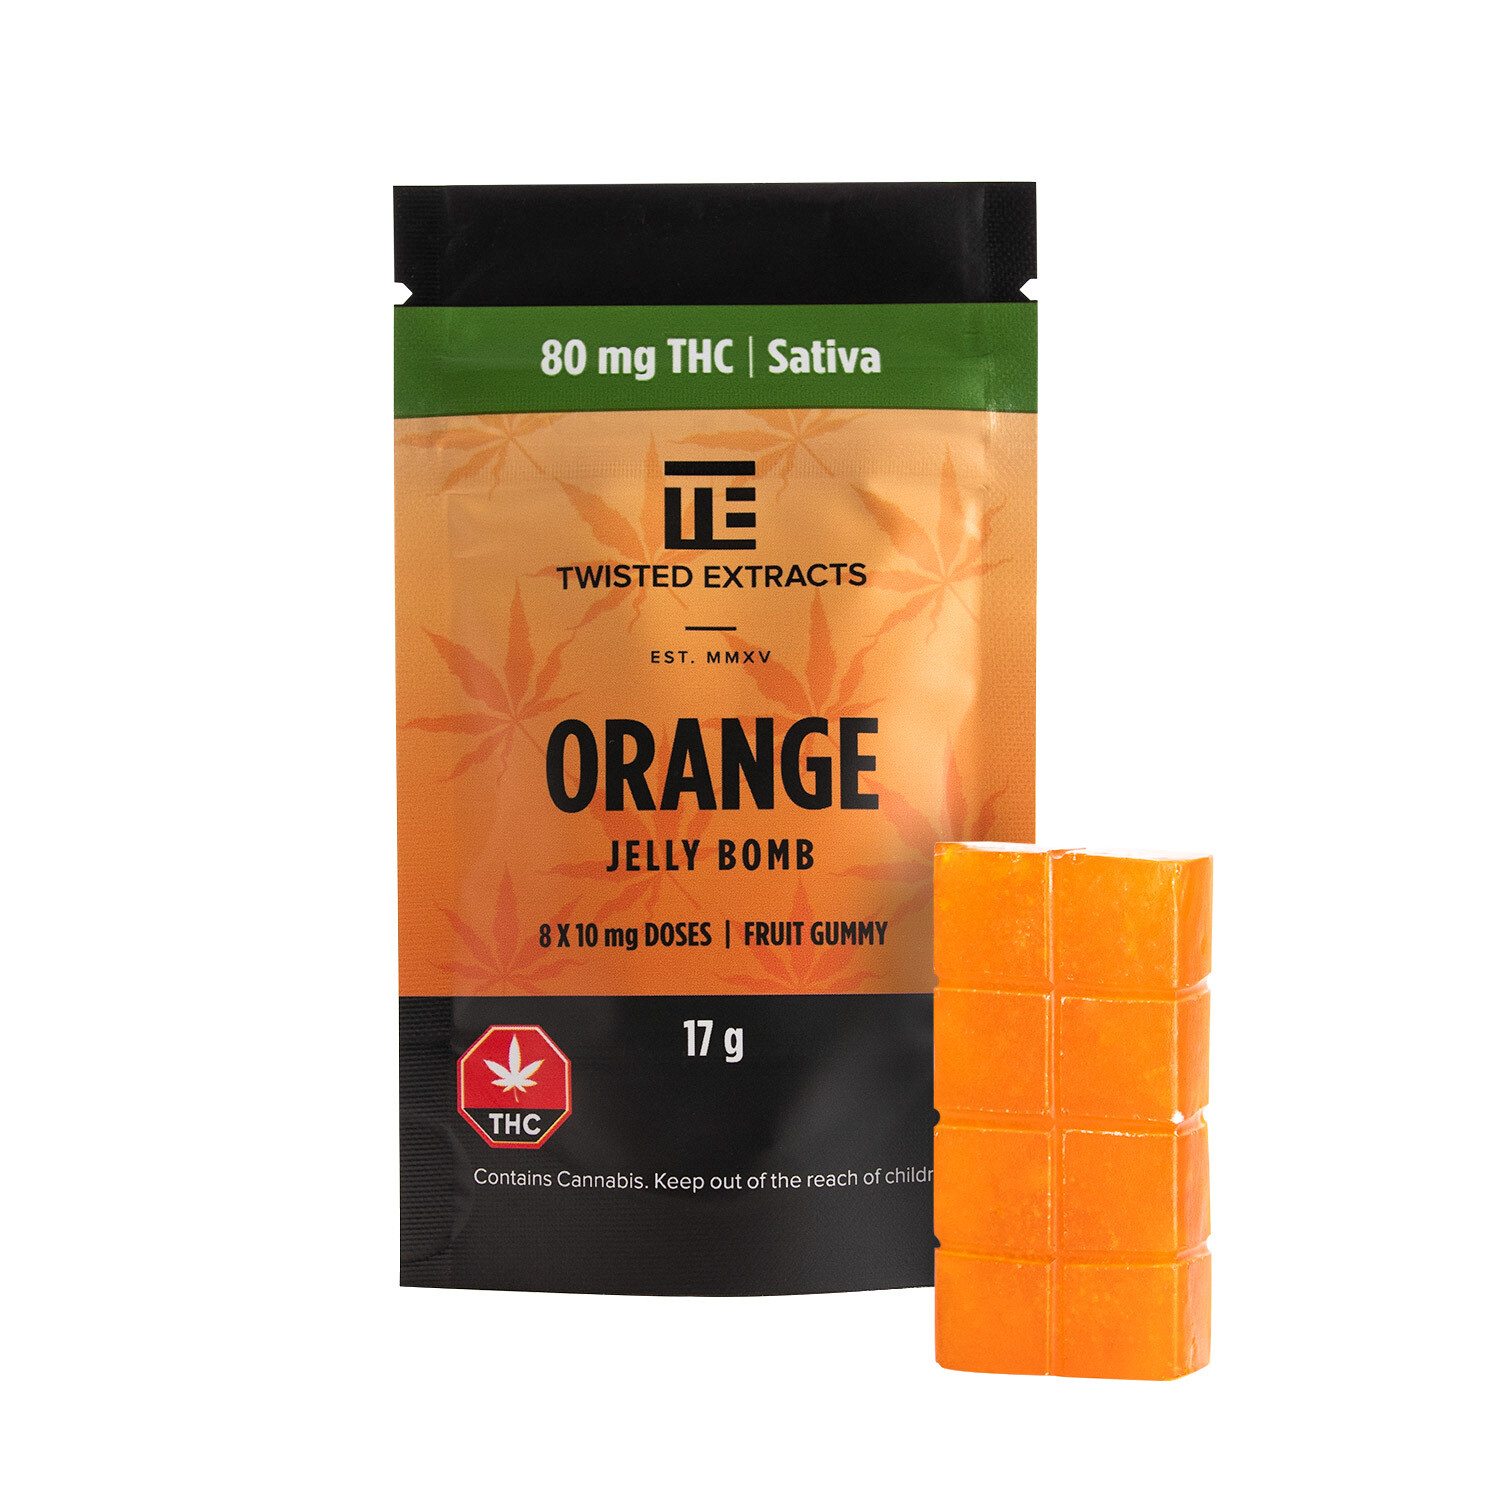 80mg THC Orange Jelly Bomb by Twisted Extracts